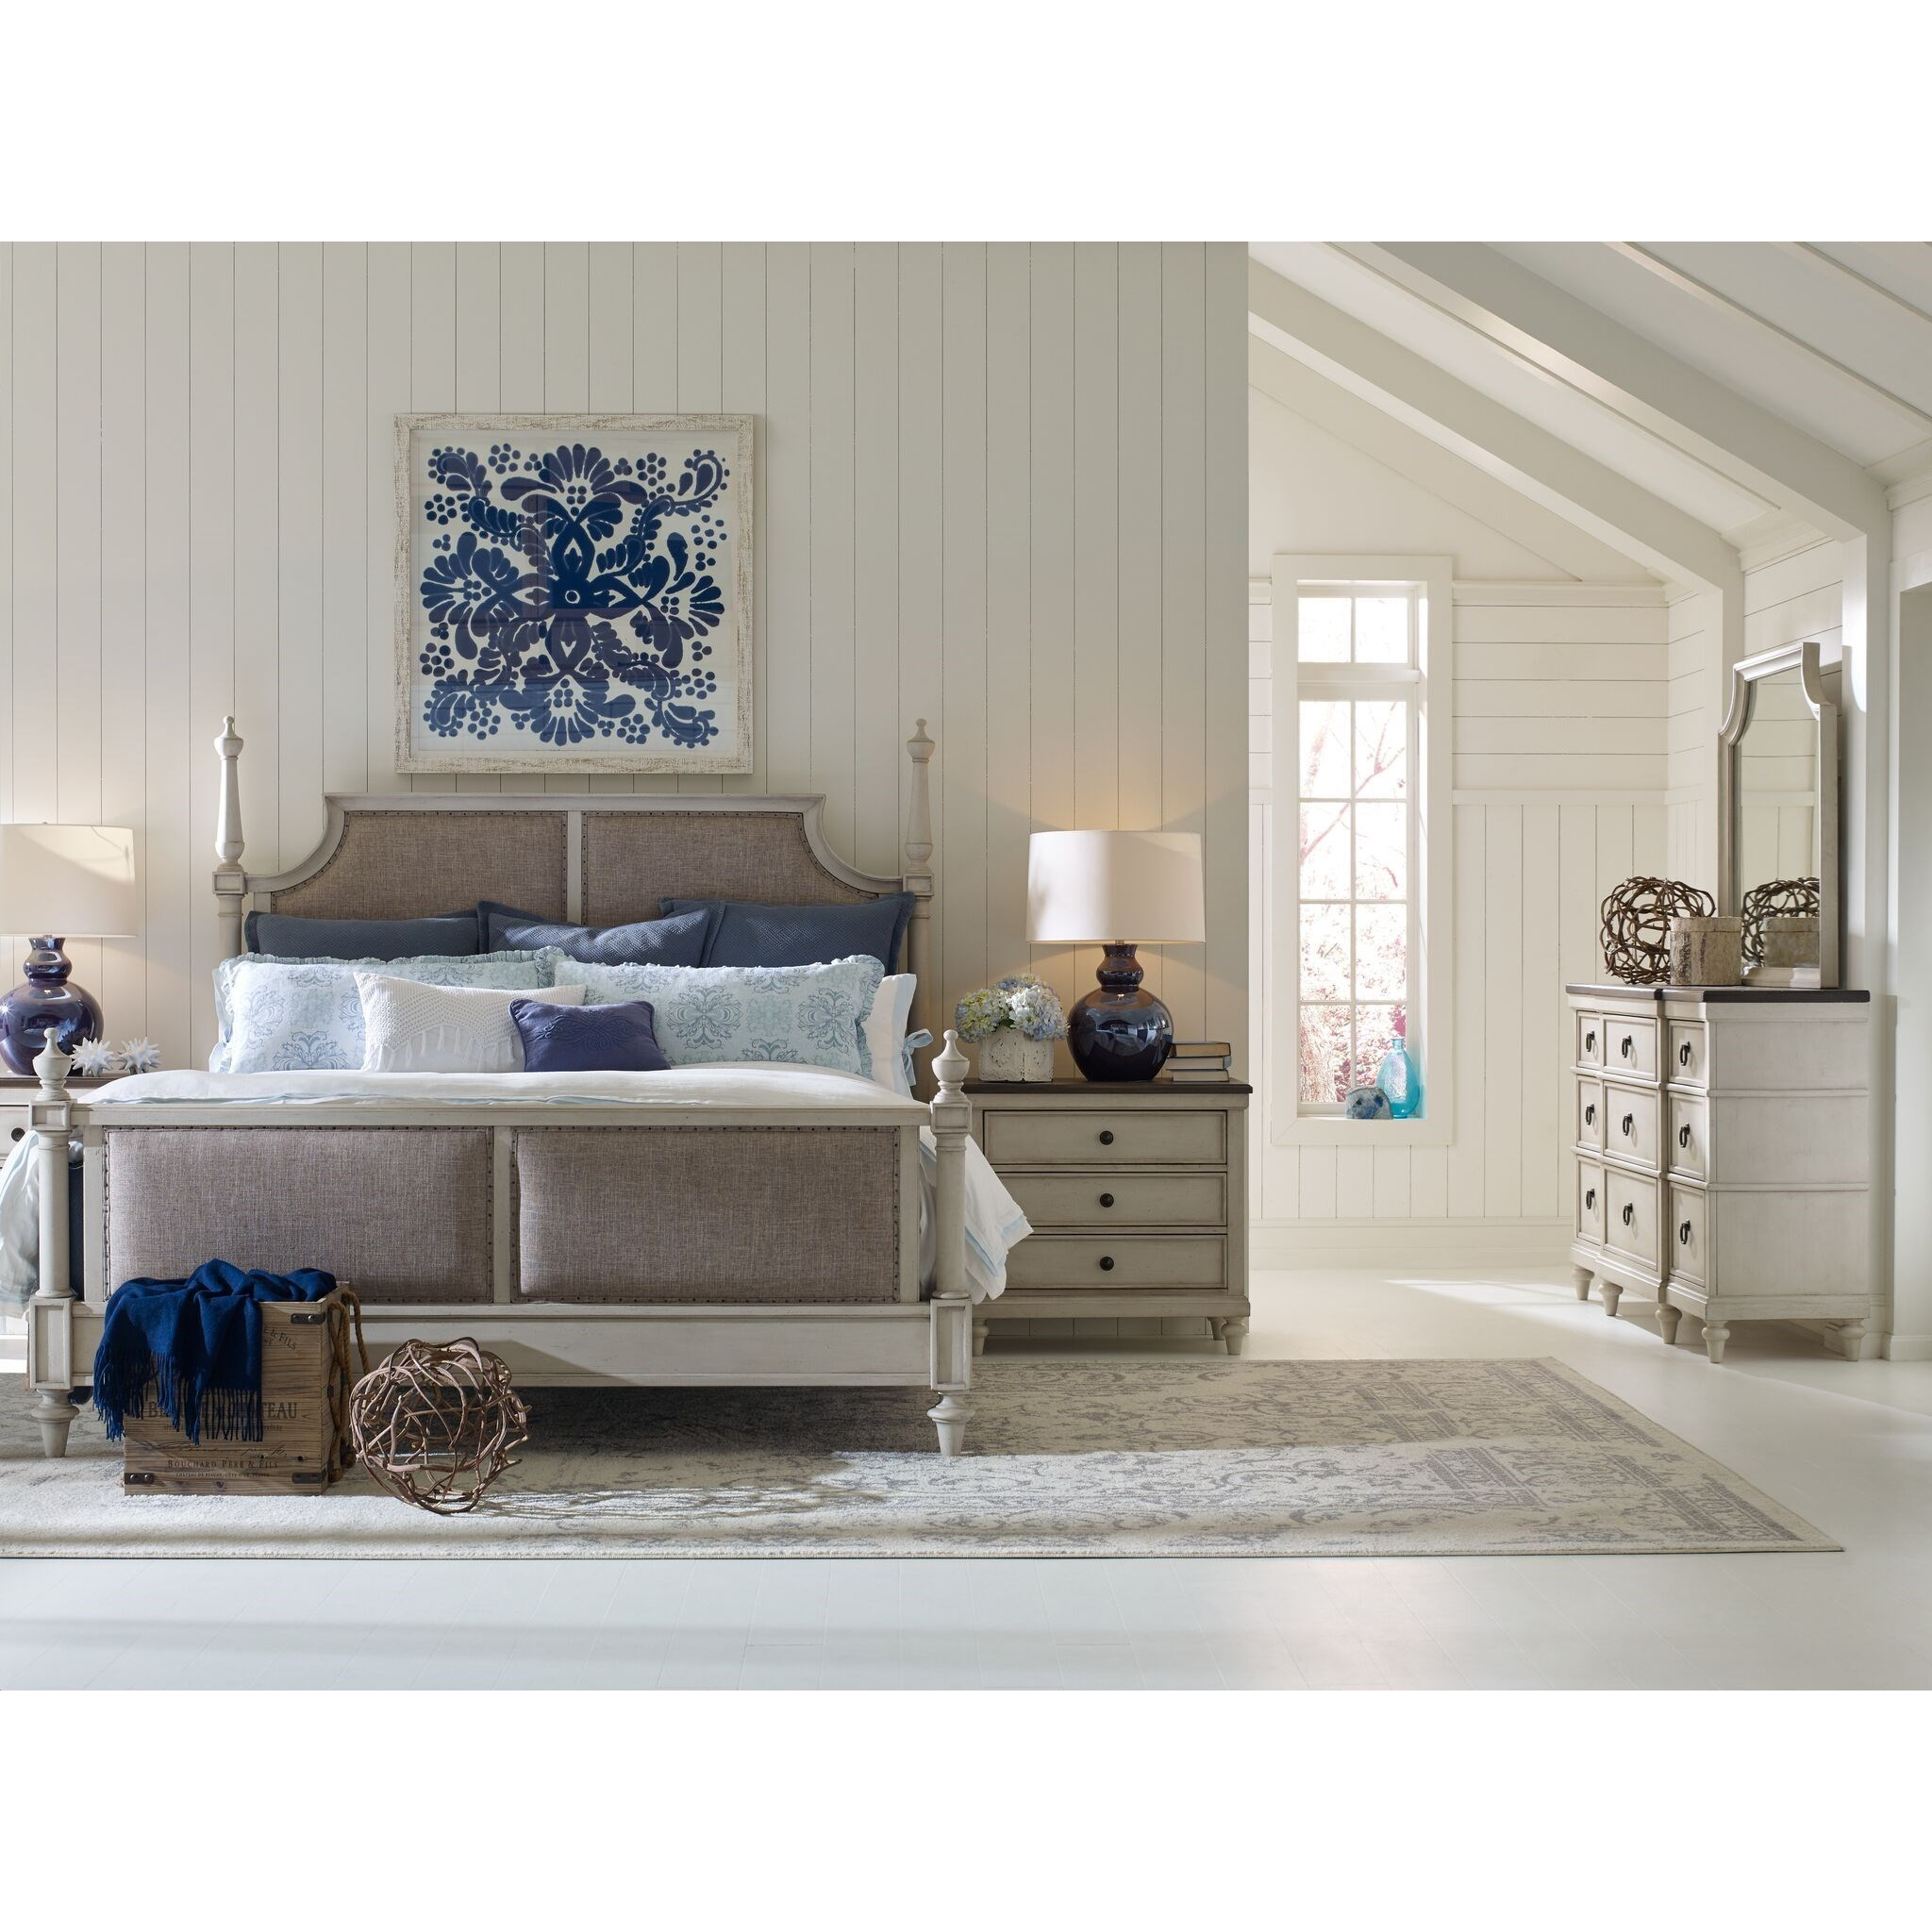 California king bedroom group by legacy classic wolf - California king bedroom furniture ...